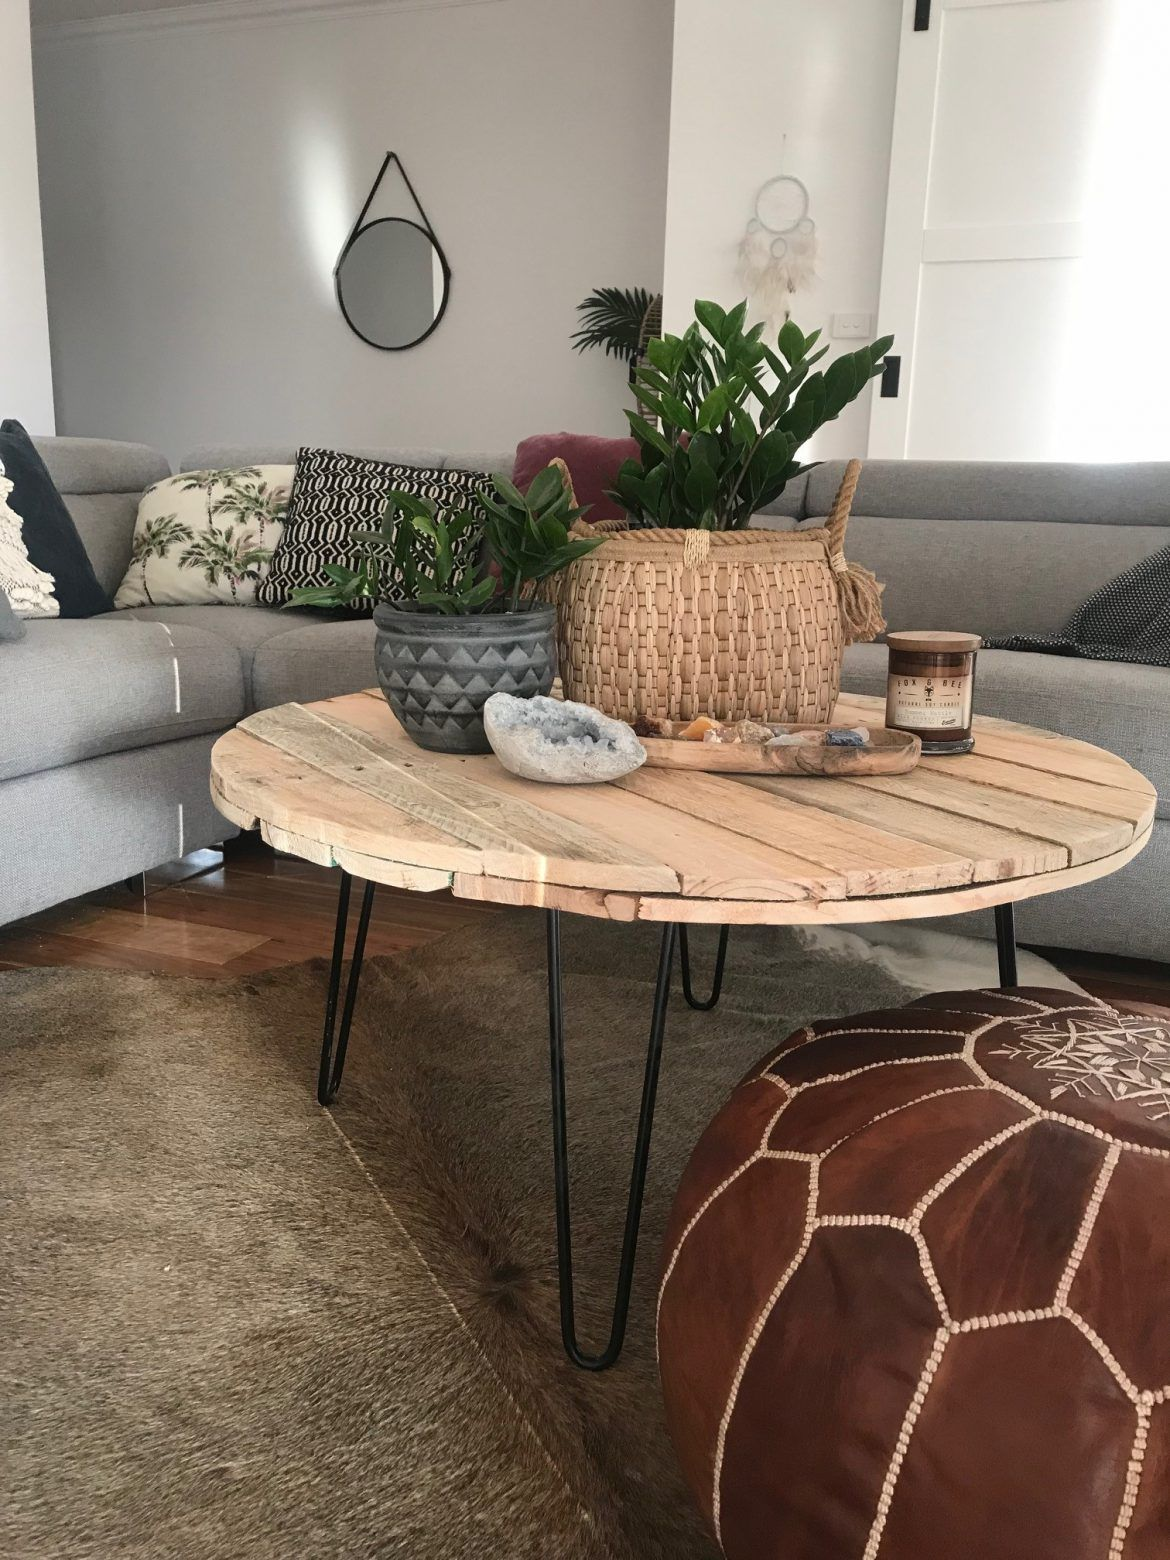 Diy Round Pallet Coffee Table With Hairpin Legs Diy Table Legs